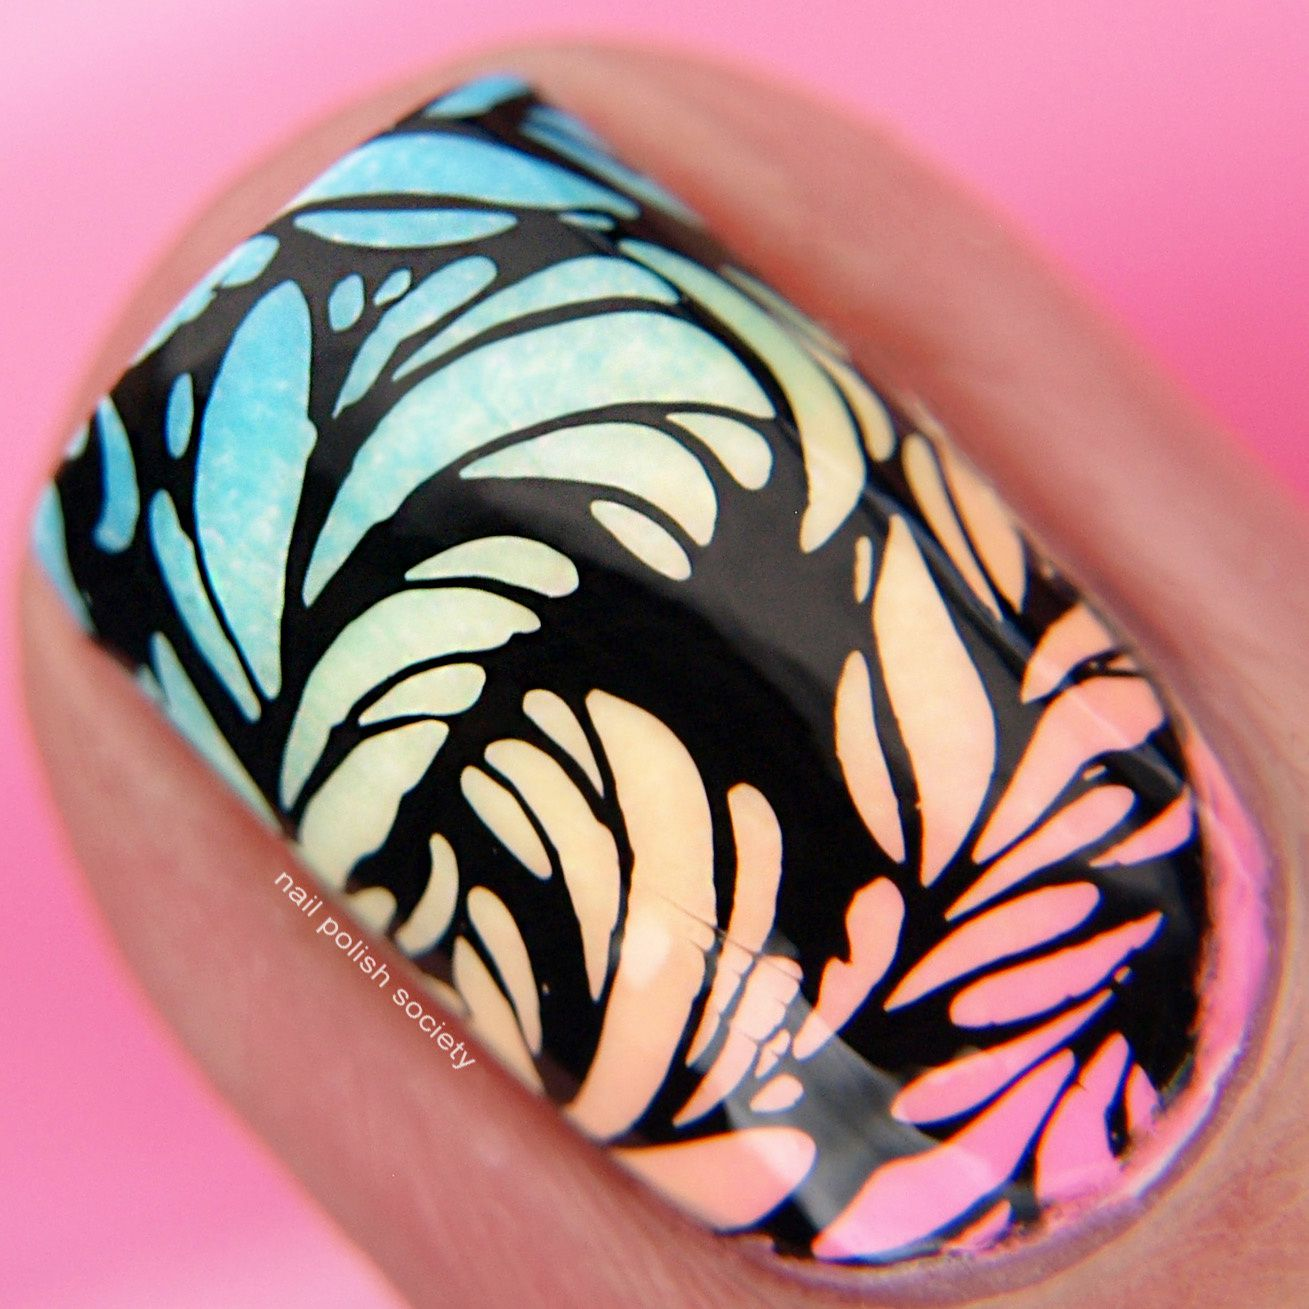 Guest Post: Stamping Nail Art from Emiline aka Nail Polish Society